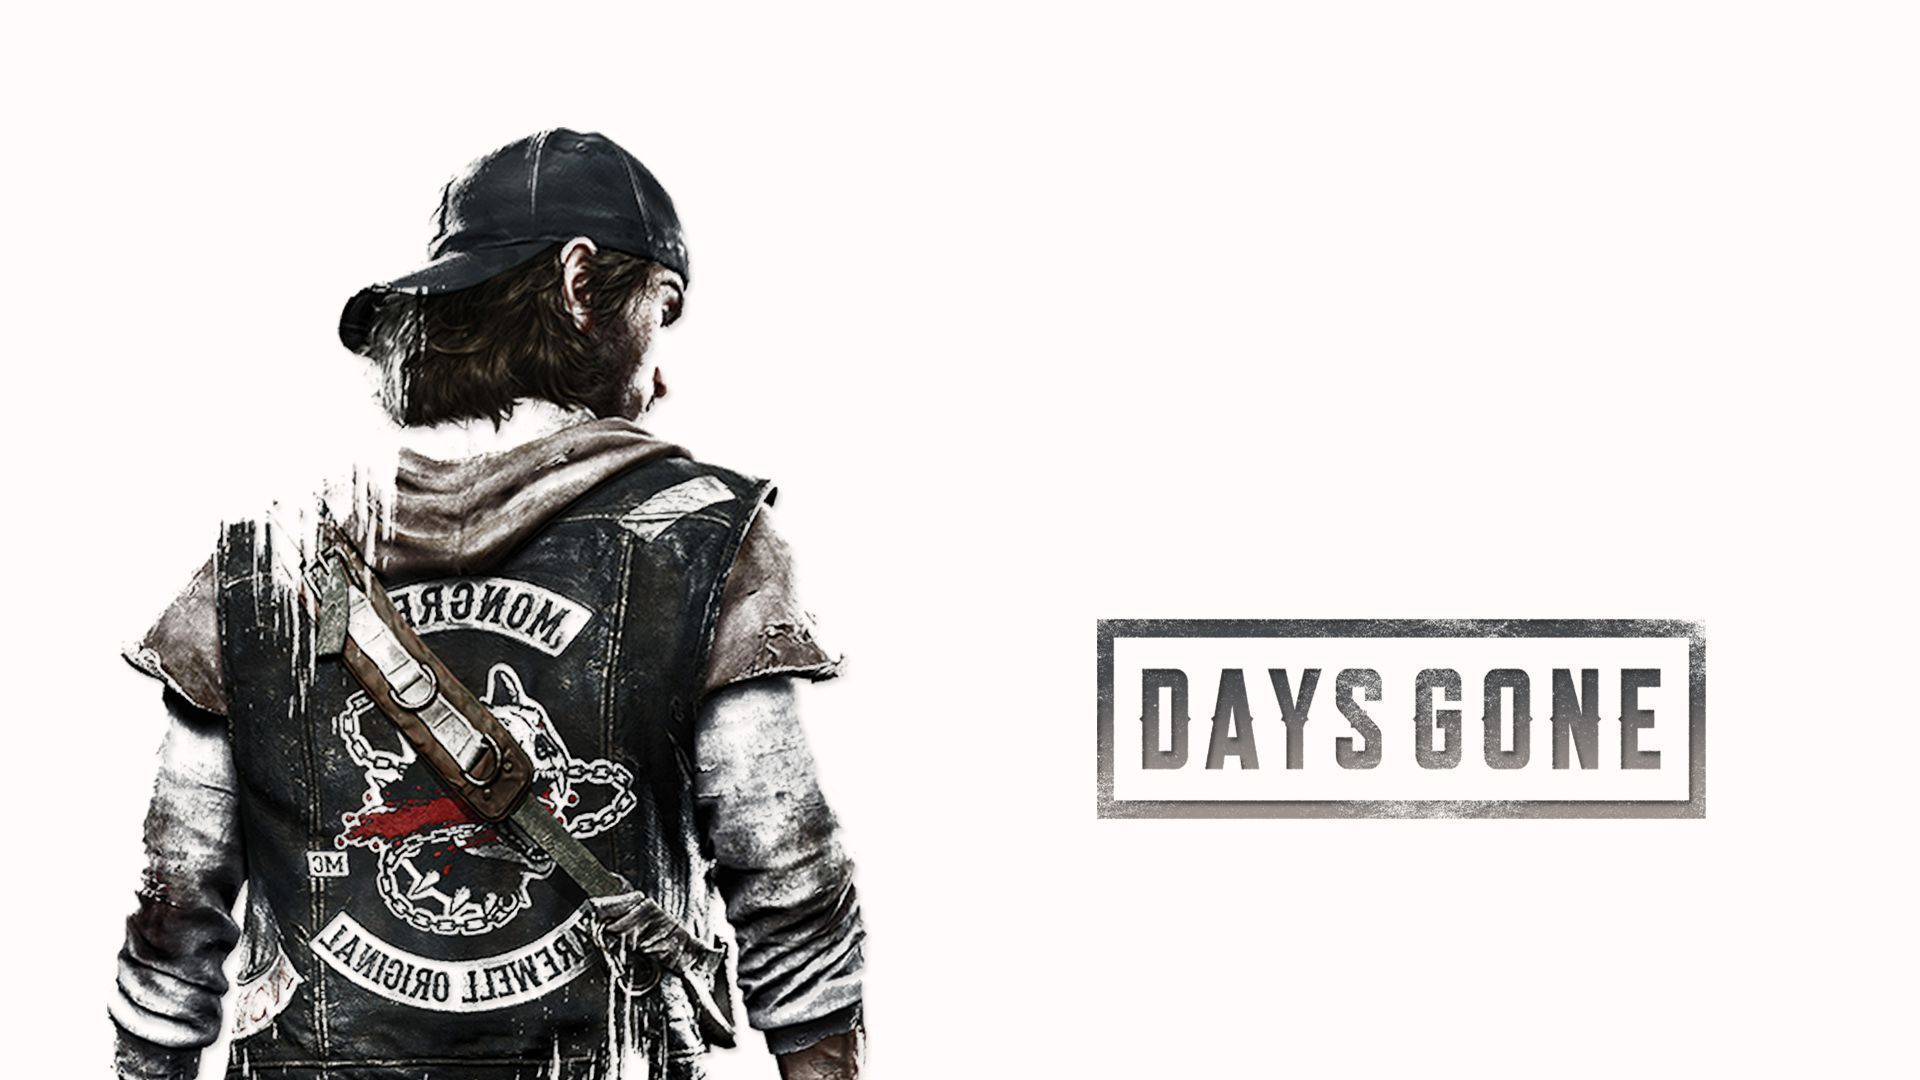 Days Gone Wallpapers with logo.